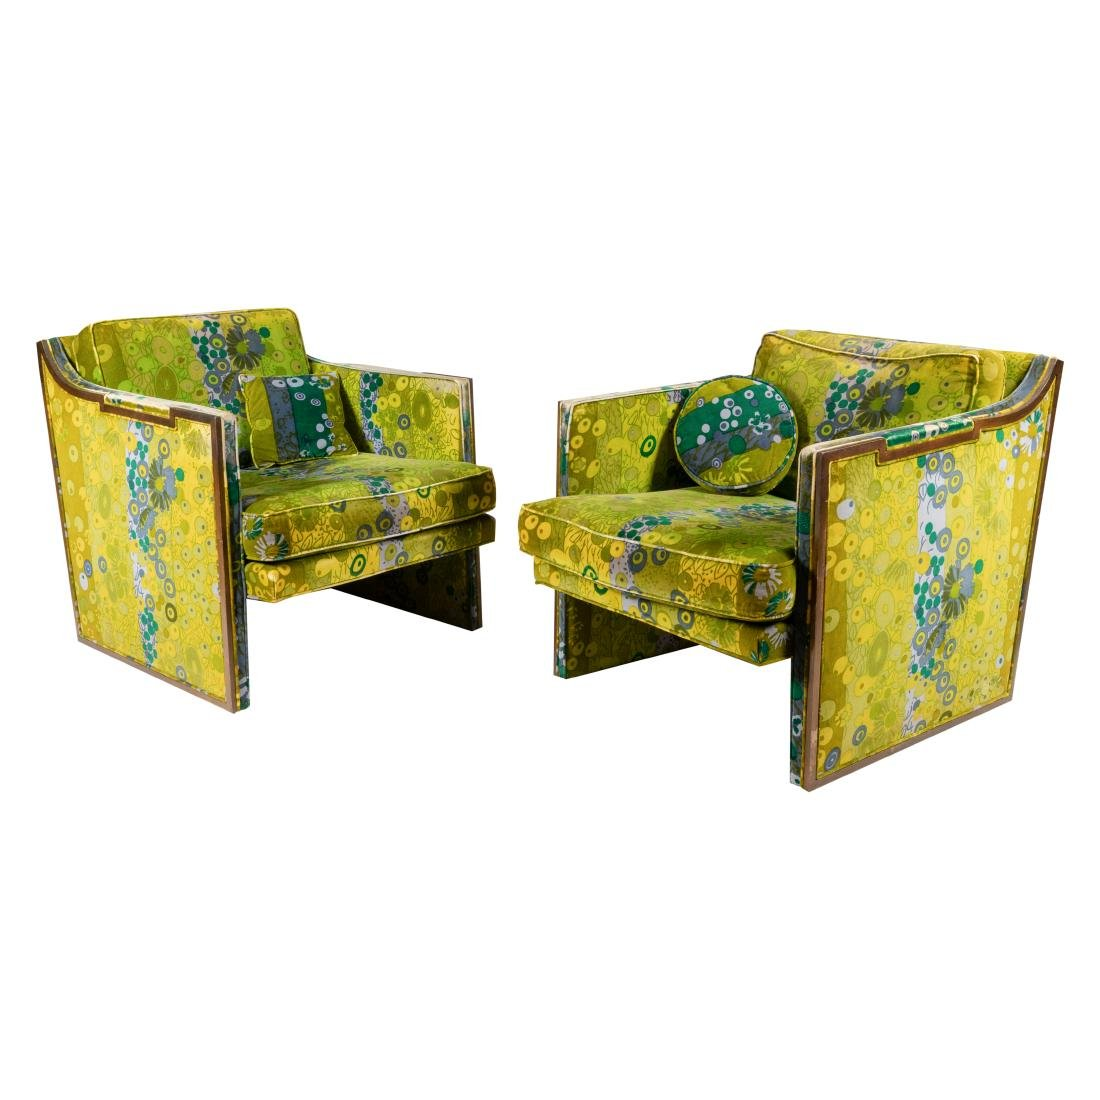 Mid Century Club Chairs - Jack Lenor Larsen